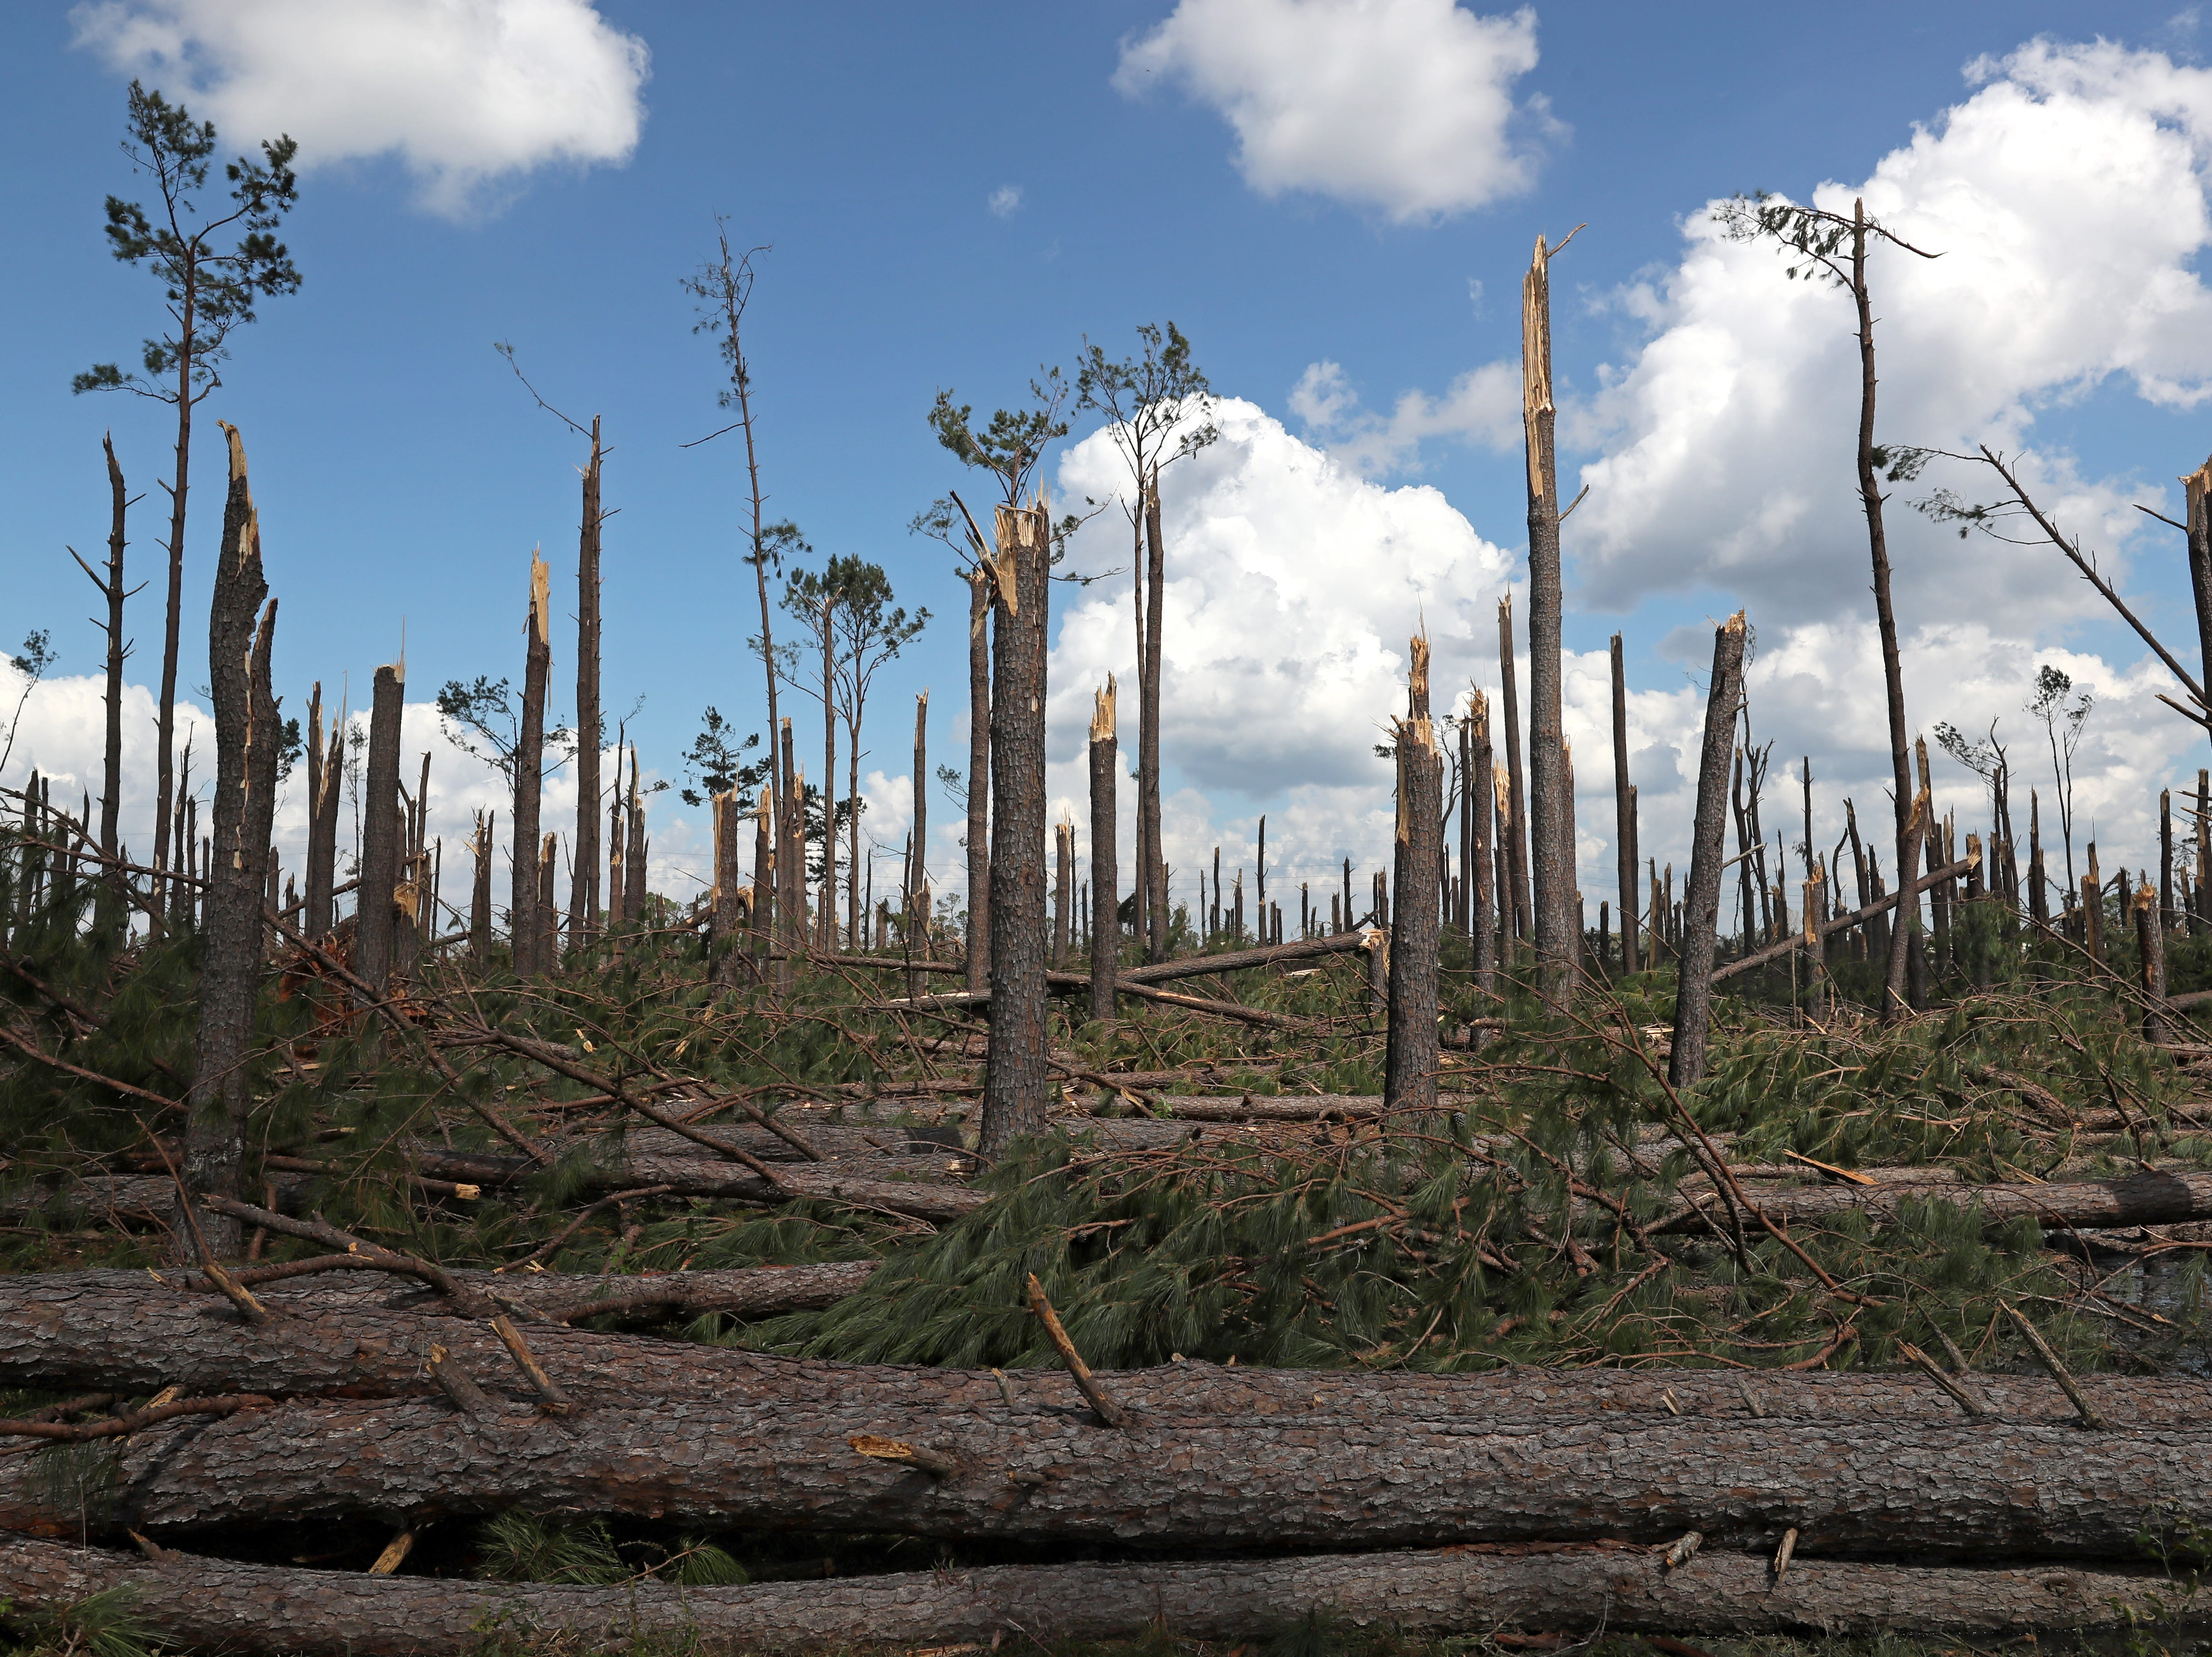 Trees are left broken in half on Highway 90 between Chattahoochee and Sneads along Hurricane Michael's path on Monday, Oct. 15, 2018.